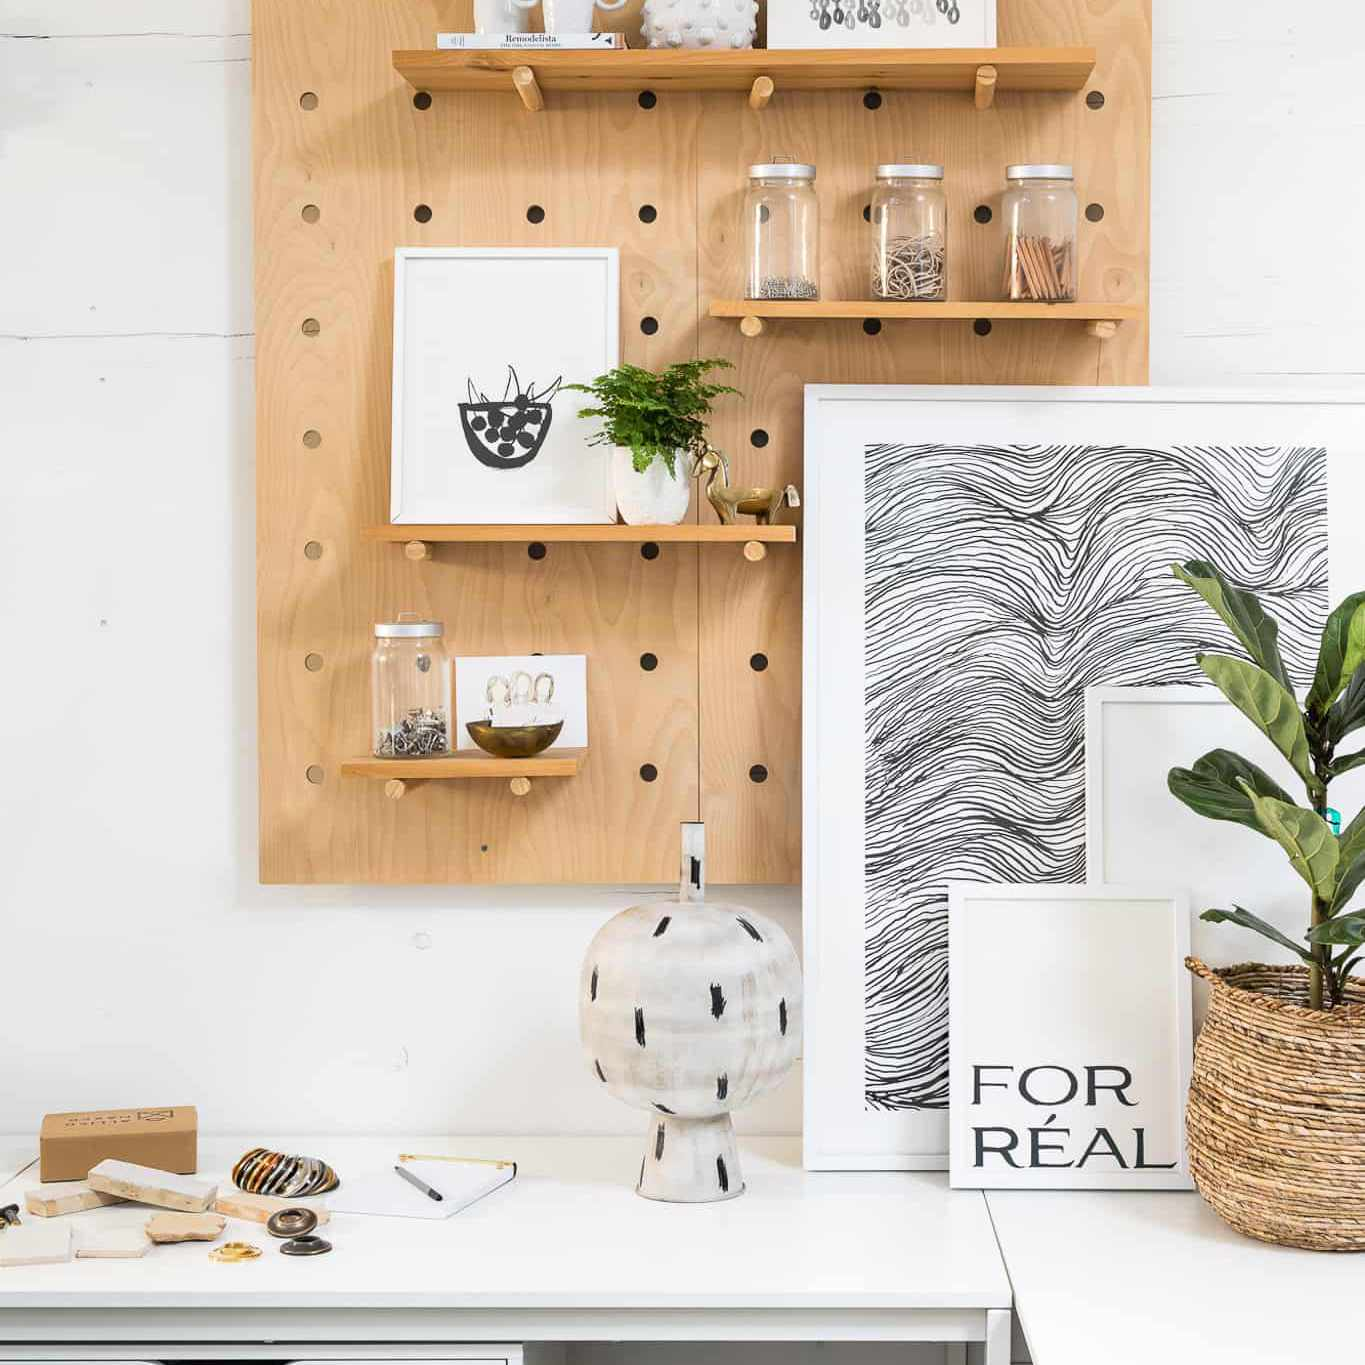 Desk decor with art and plants.